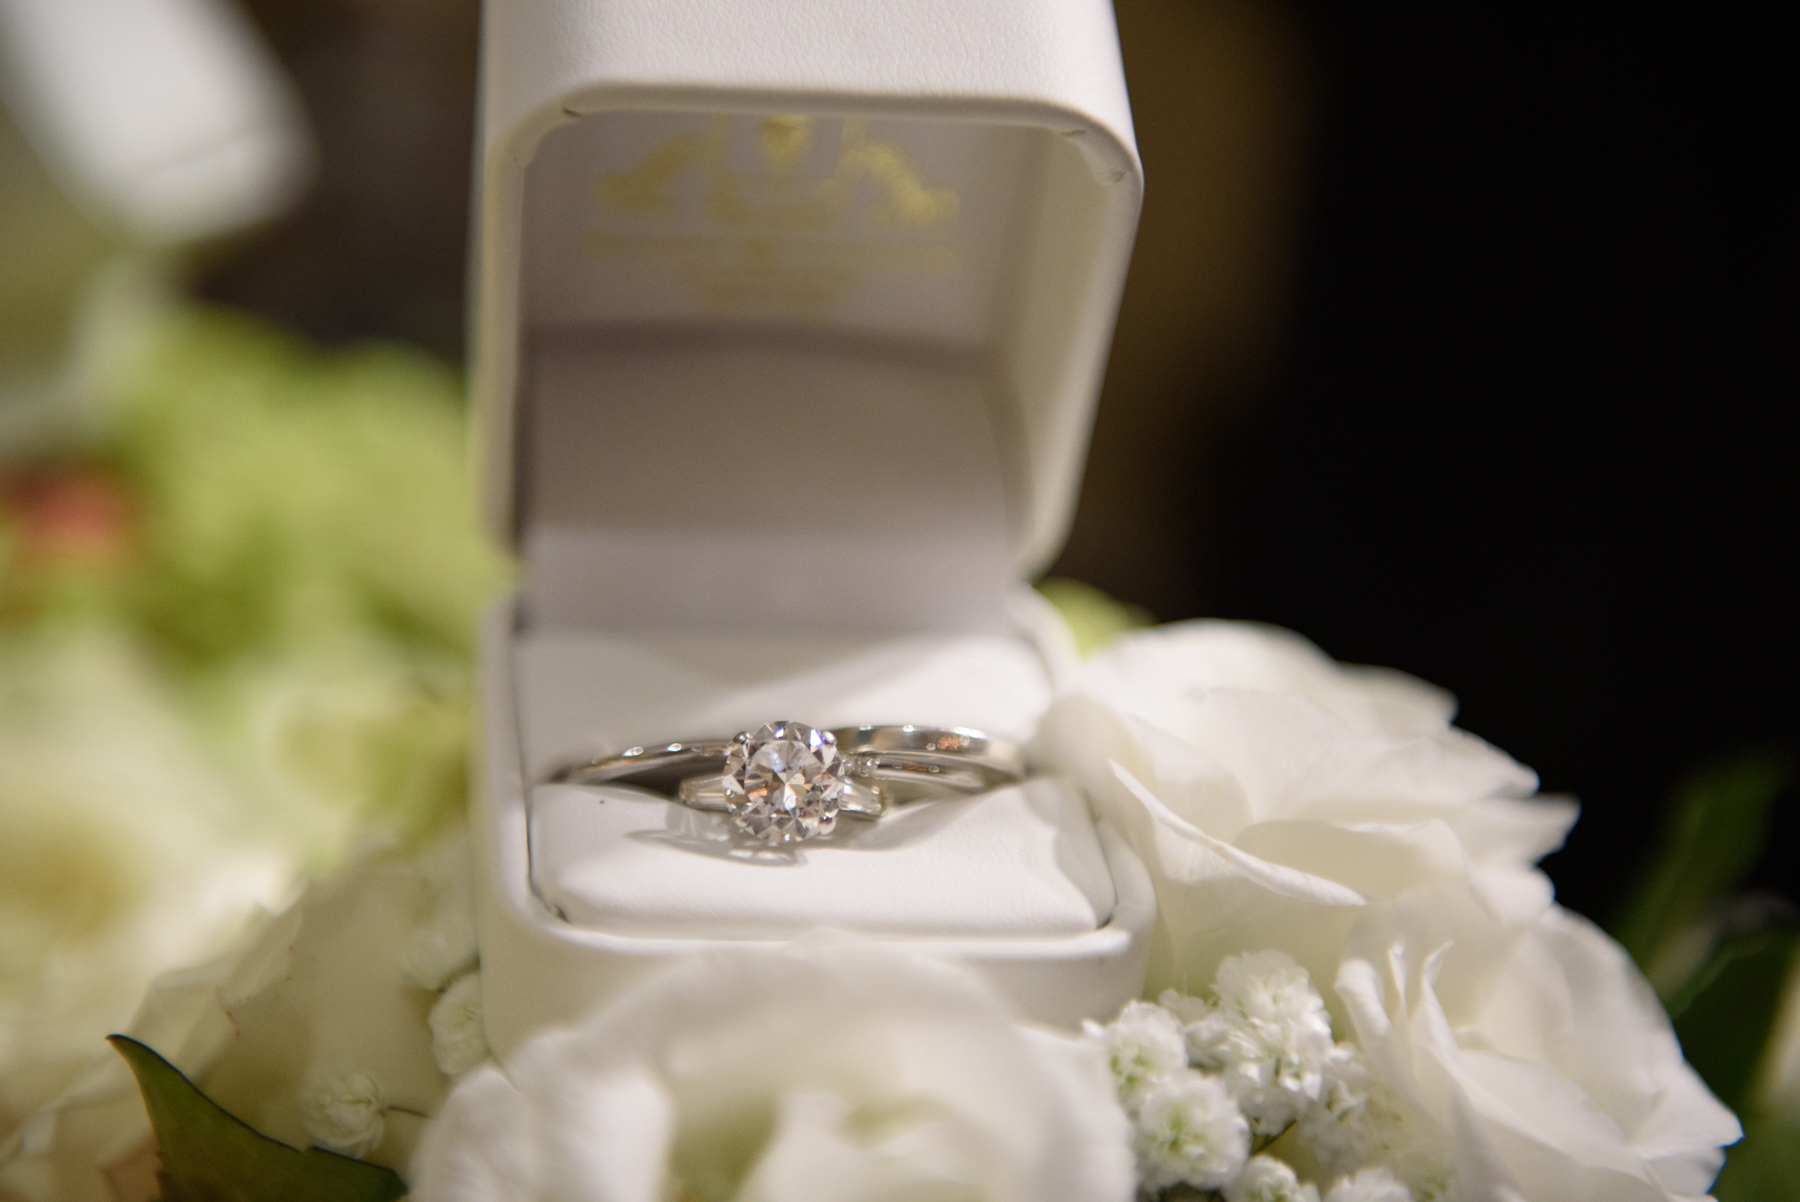 diamond-ring-sitting-in-white-box-on-flowers